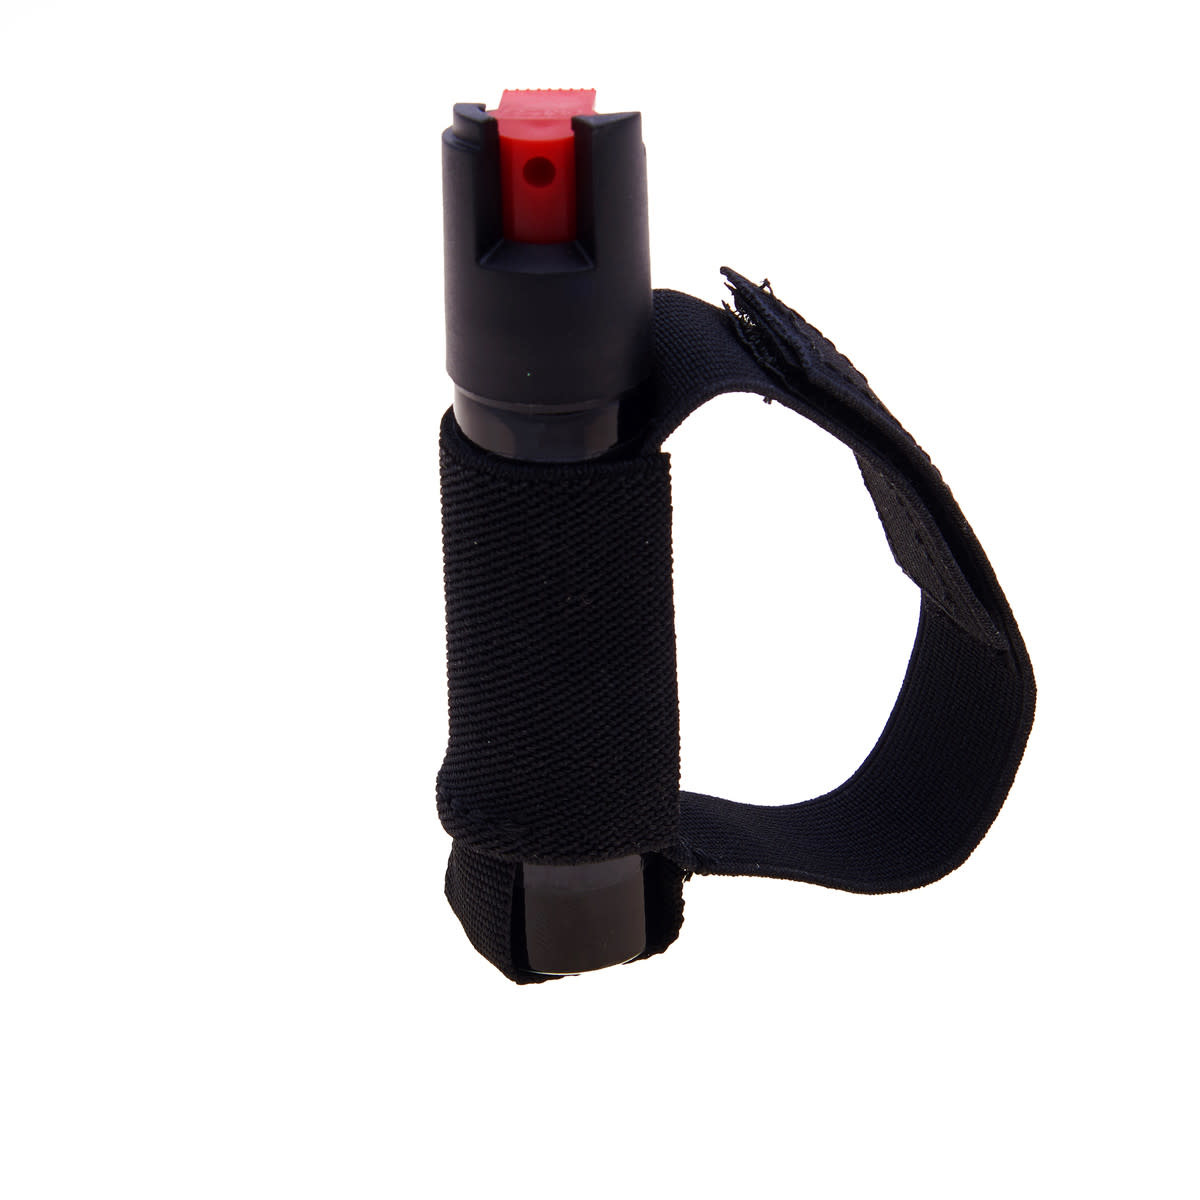 Rapid Strike Pepper Spray R2